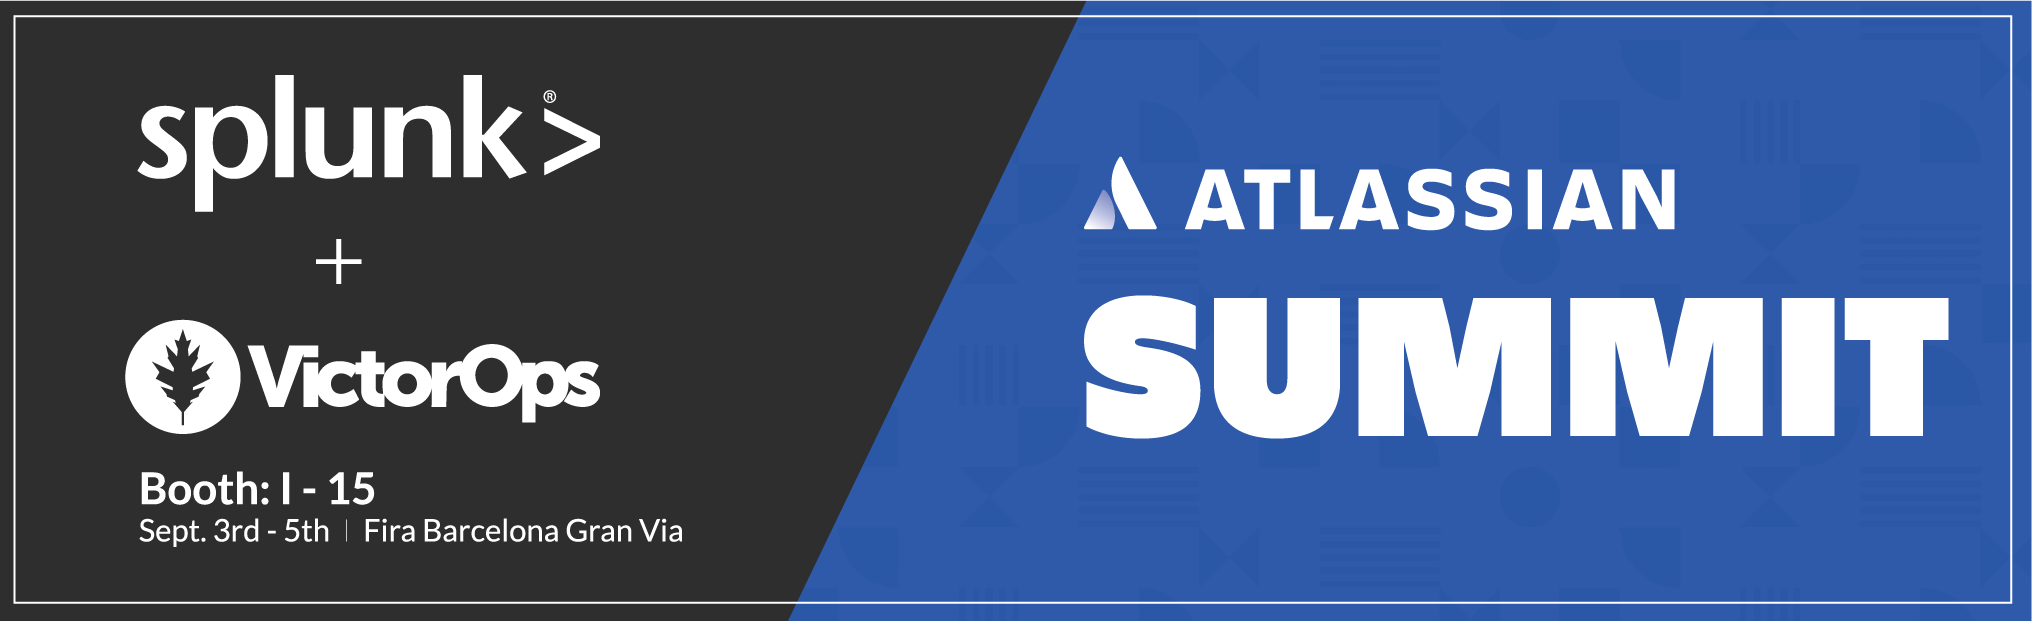 Atlassian Summit 2018 Barcelona Blog Banner